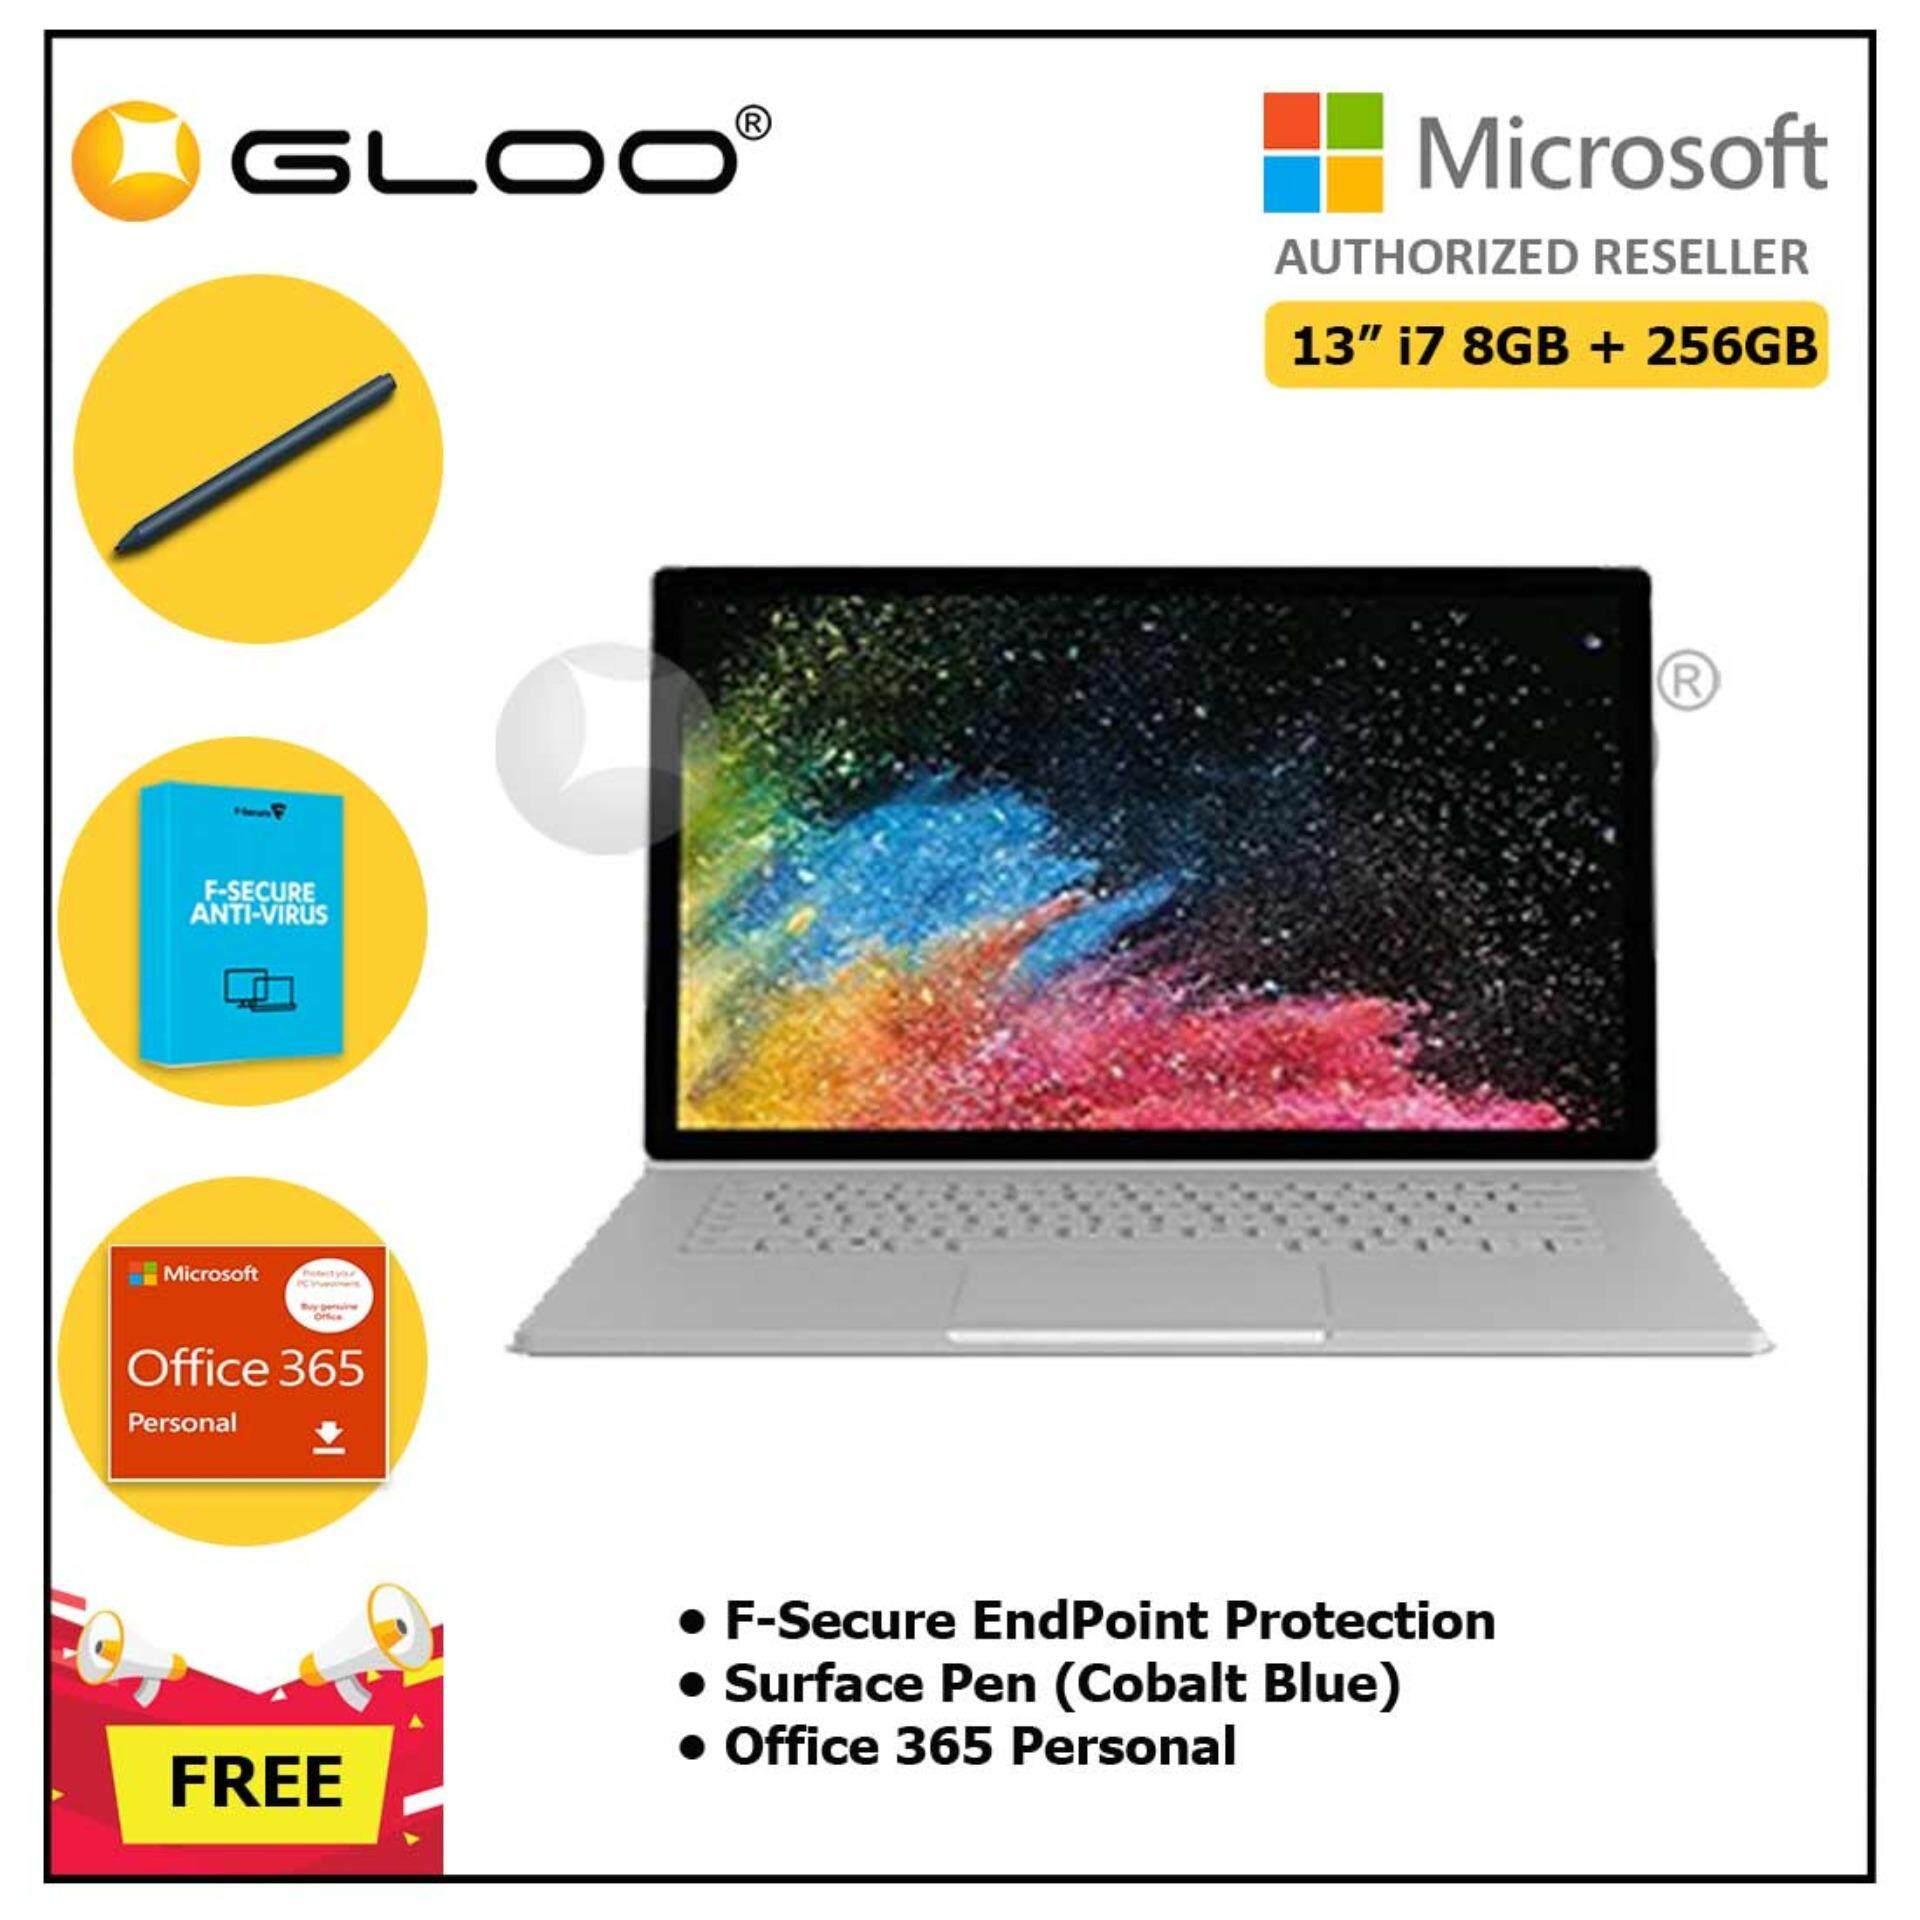 """Surface Book 2 13"""" i7/8GB 256GB + F-Secure EndPoint Protection + Office 365 Personal ESD + Pen Cobalt Blue"""